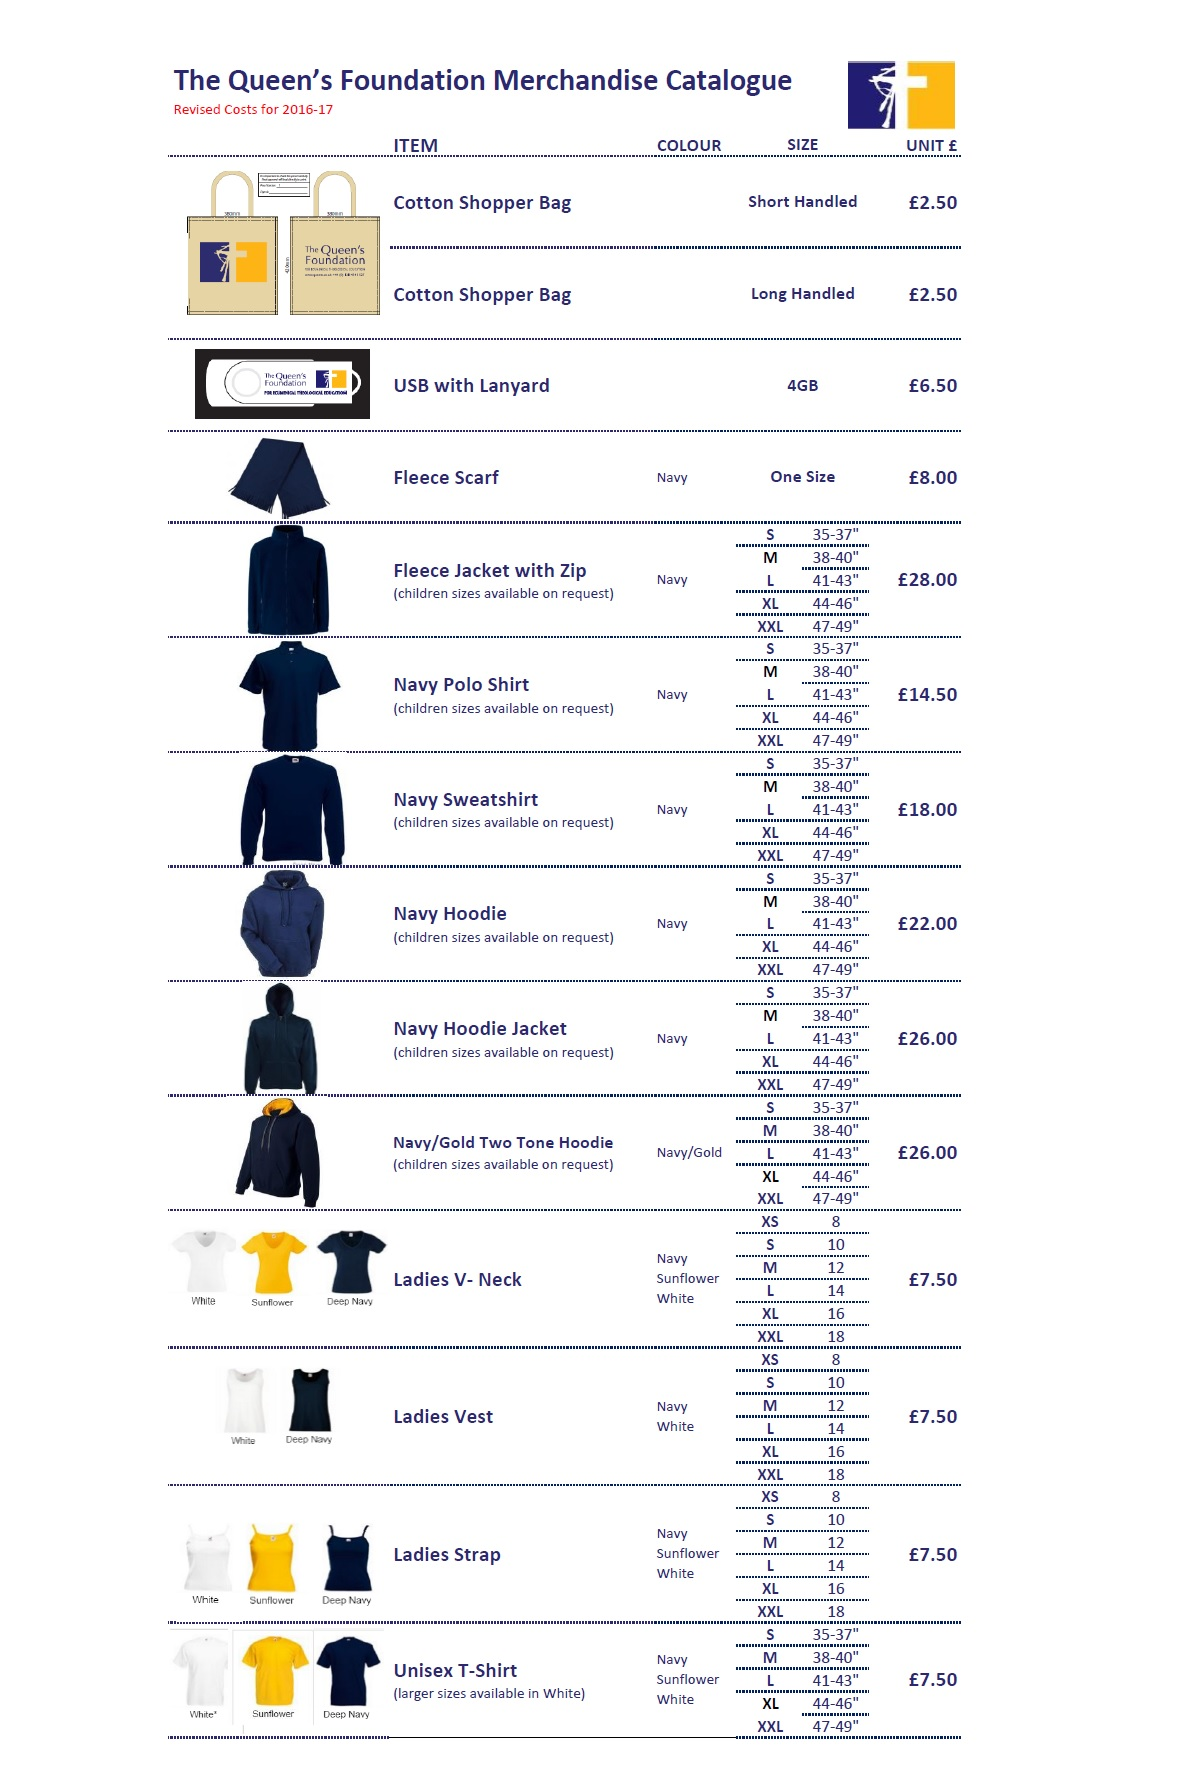 Attachment Merchandise Catalogue V3.jpg